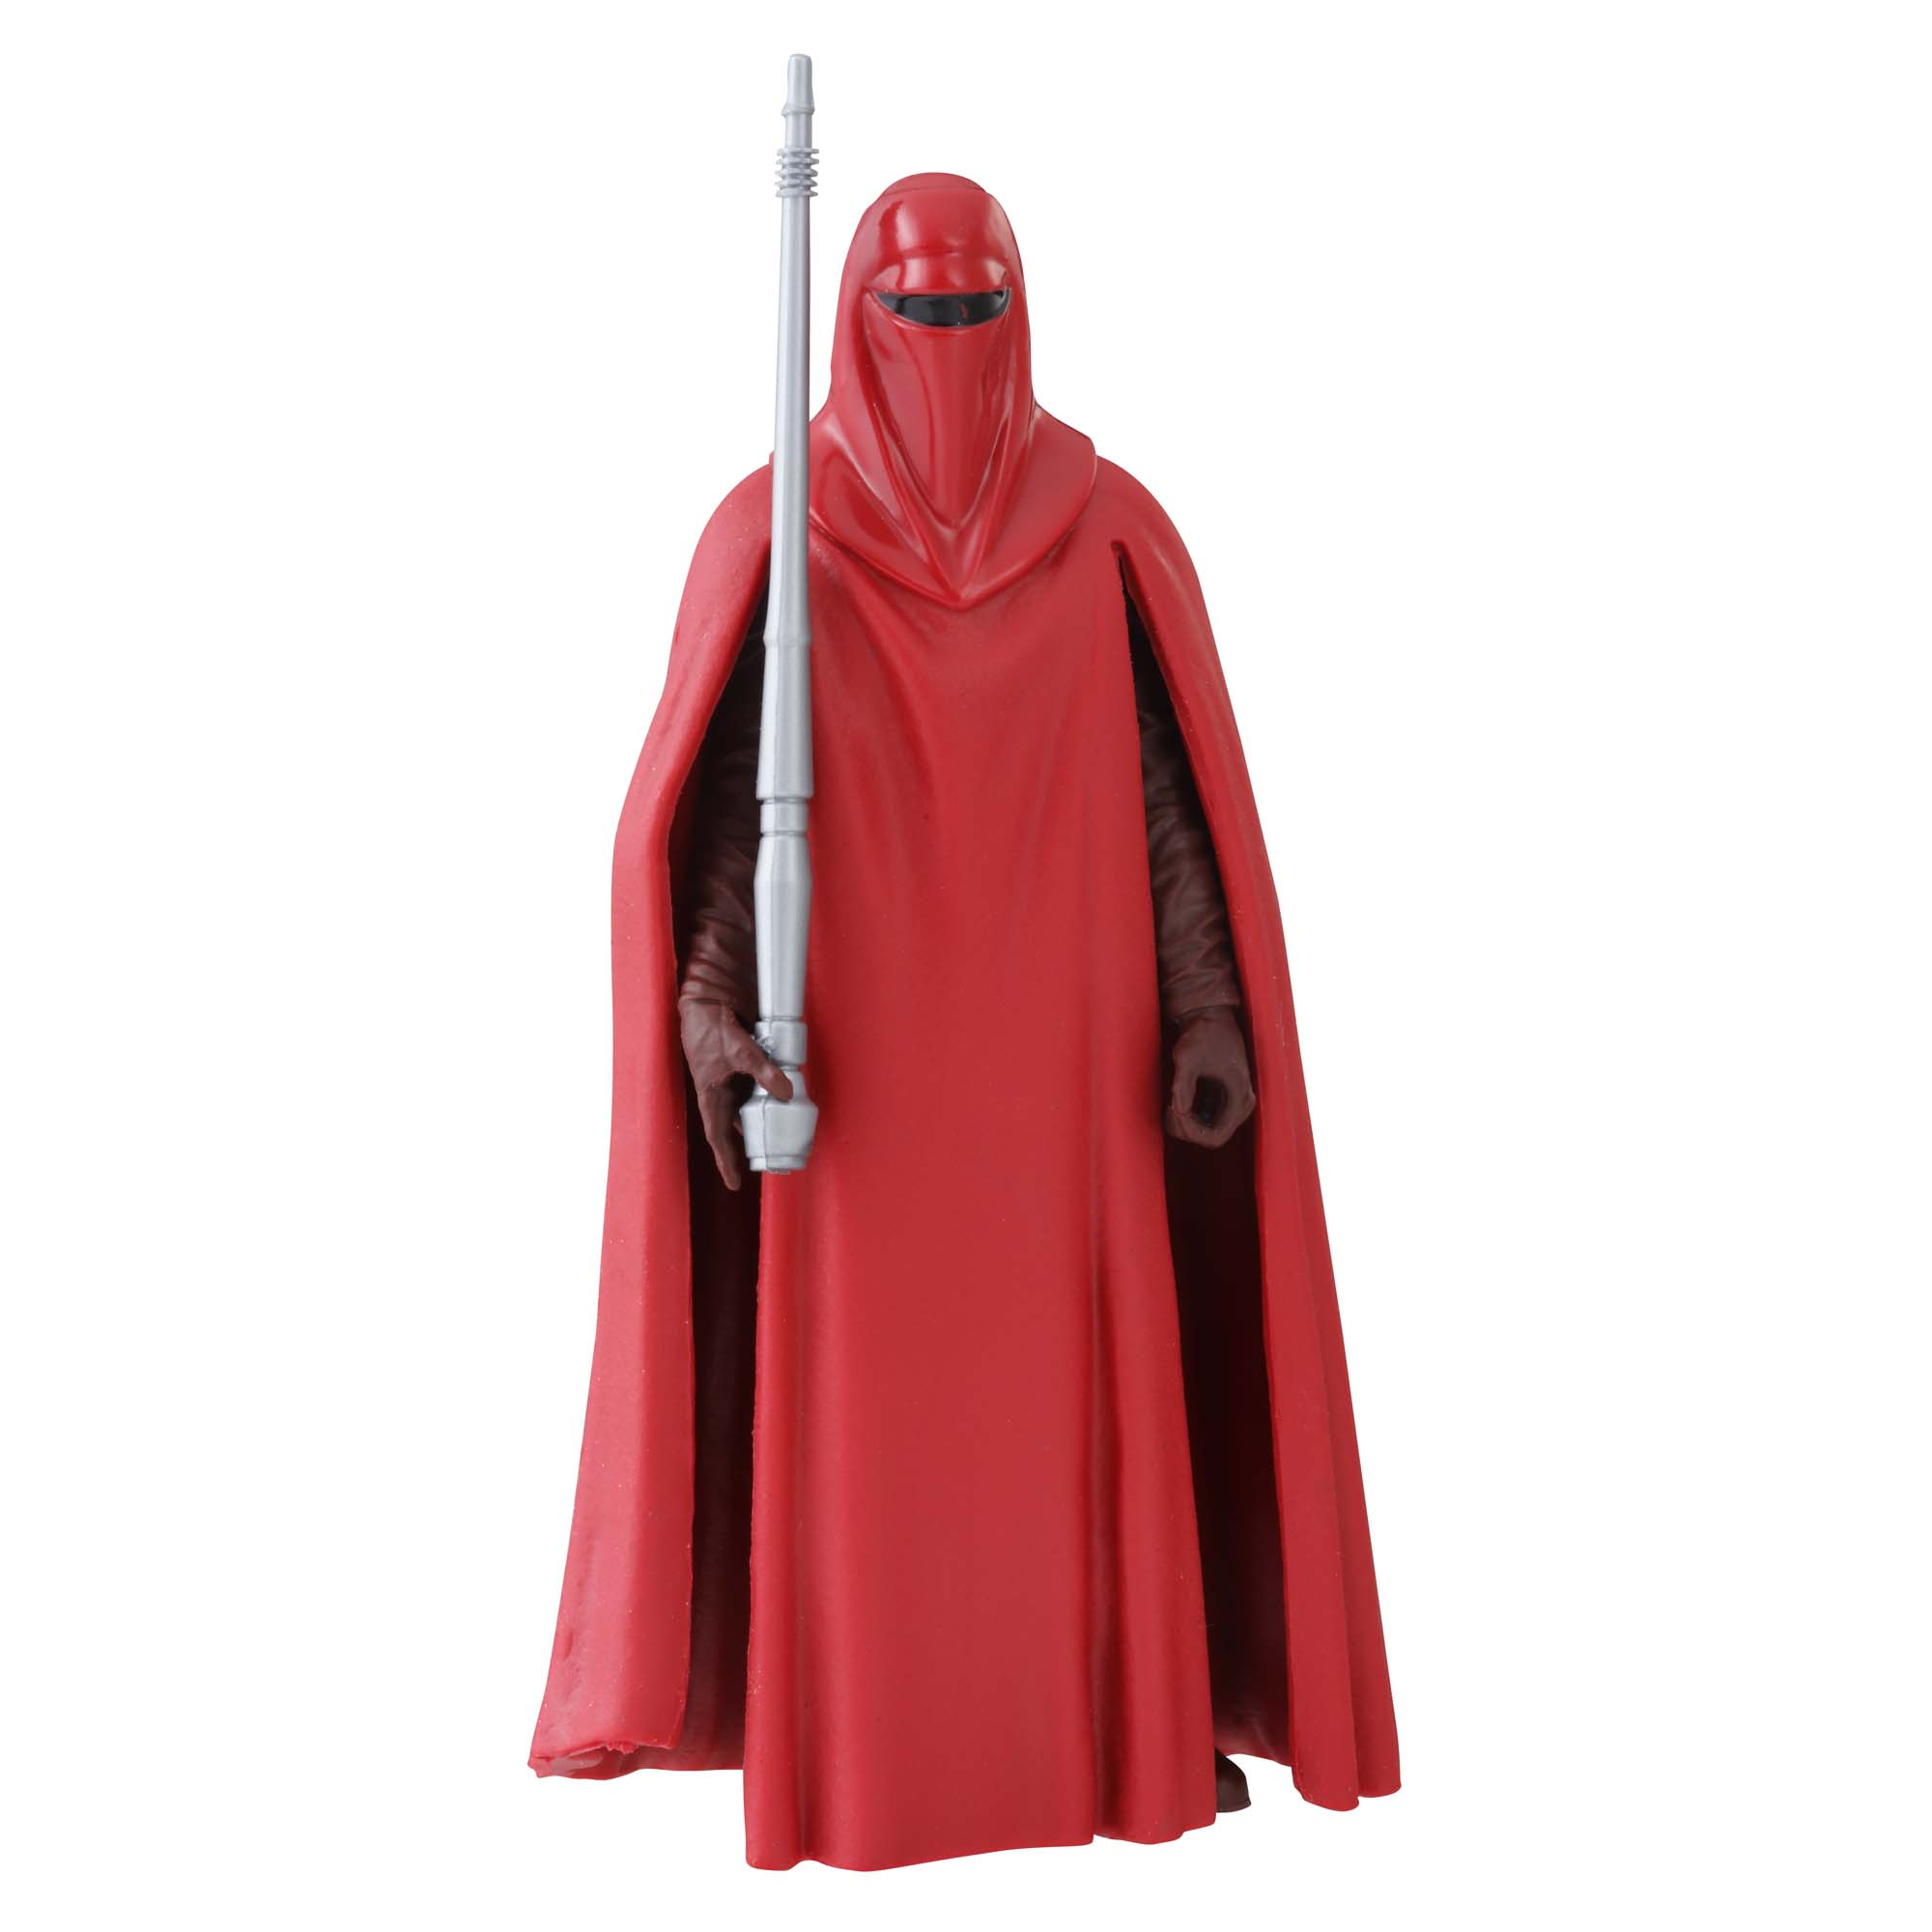 Solo: ASWS (ROTJ) FL 2.0 Imperial Royal Guard Figure 2